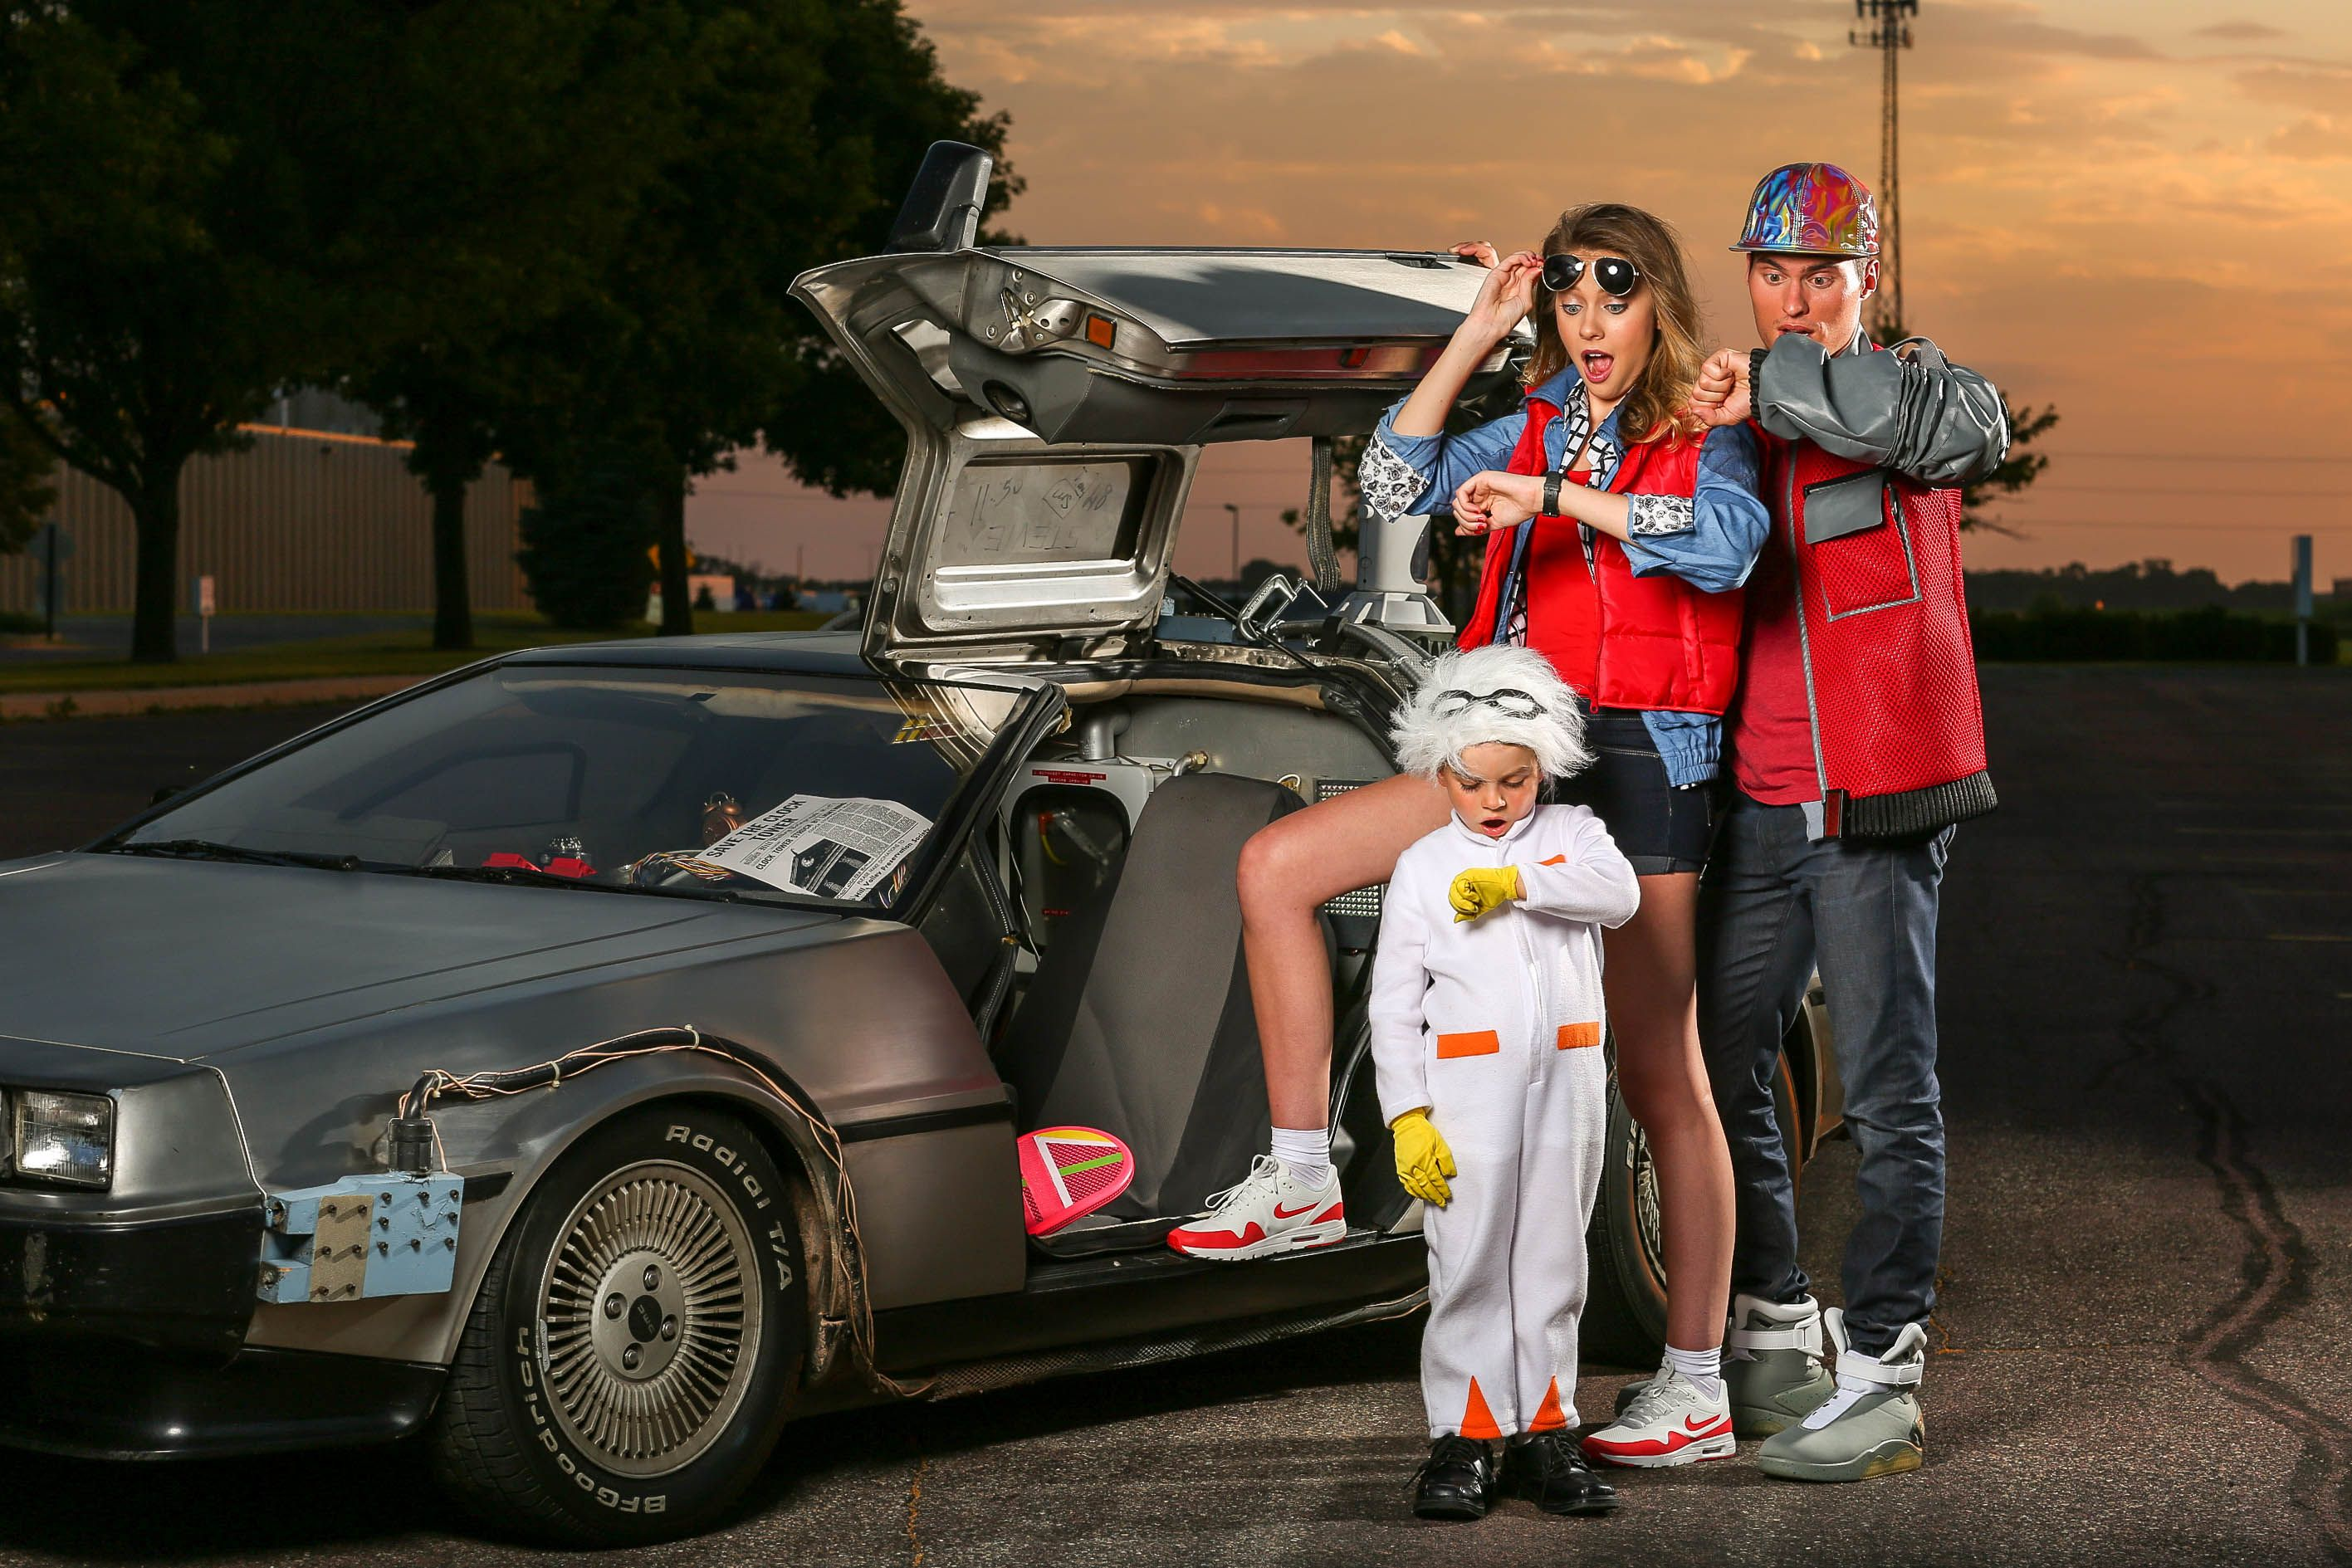 Fun Group Family Halloween Costumes Travel Back In Time With Our Many Back To The Future Costumes For Adul Family Halloween Costumes Family Halloween Costumes